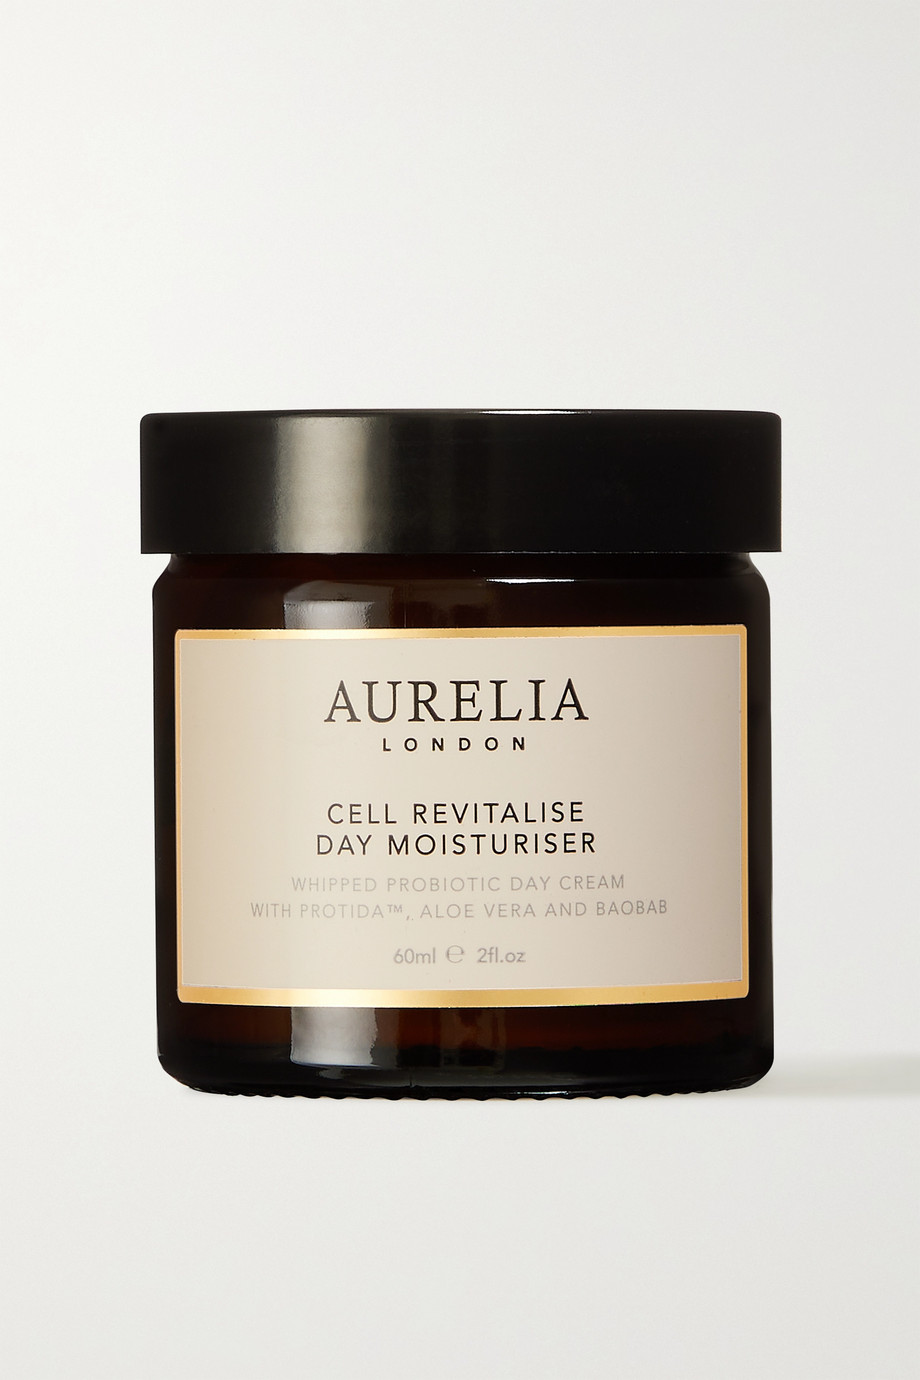 Cell Revitalize Day Moisturizer, 60ml, by Aurelia Probiotic Skincare